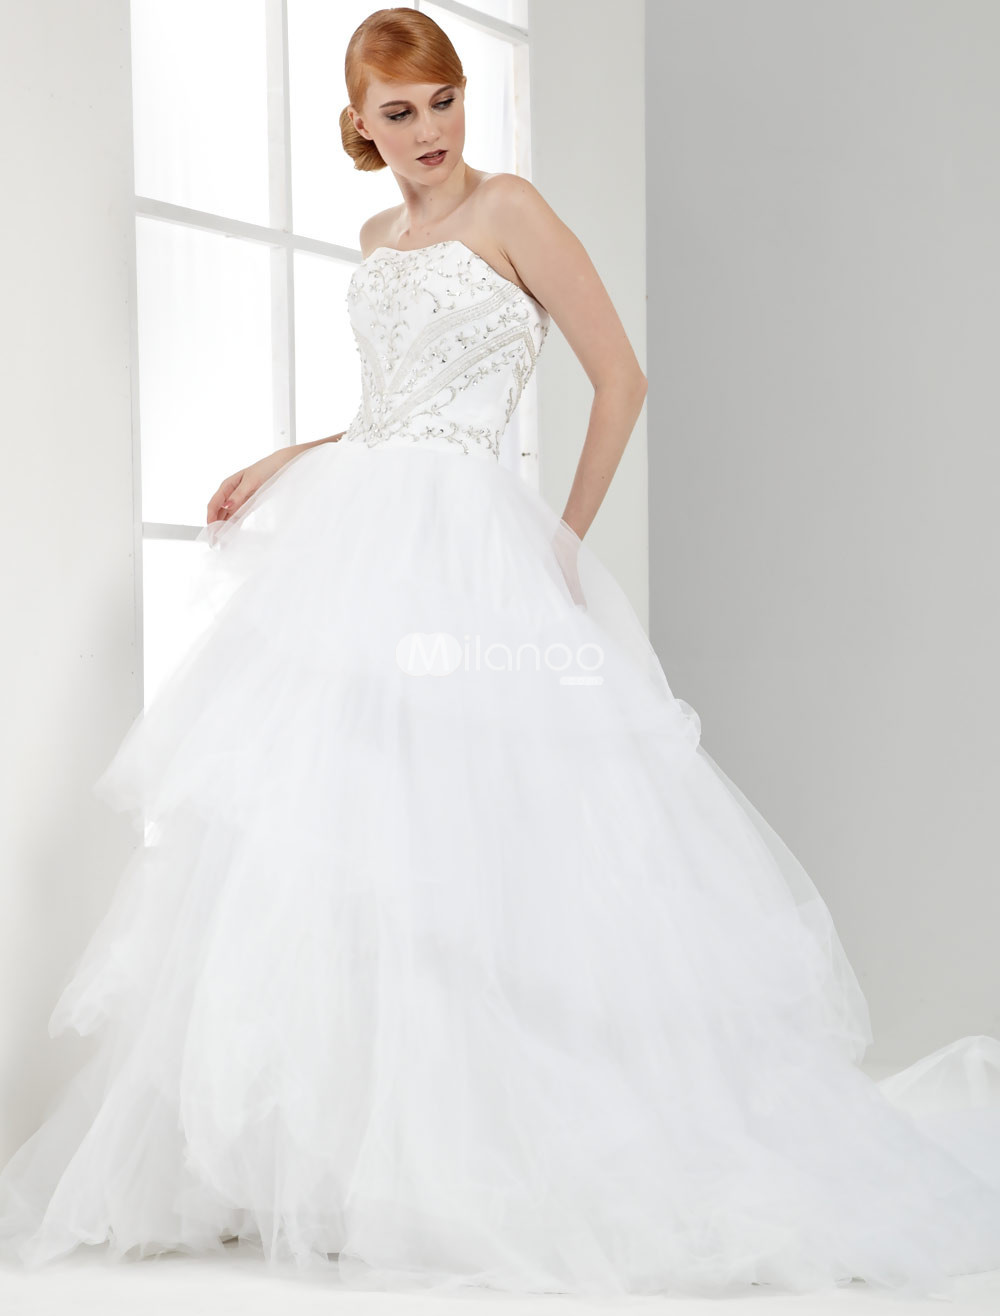 White Strapless A-line Net Bridal Gown